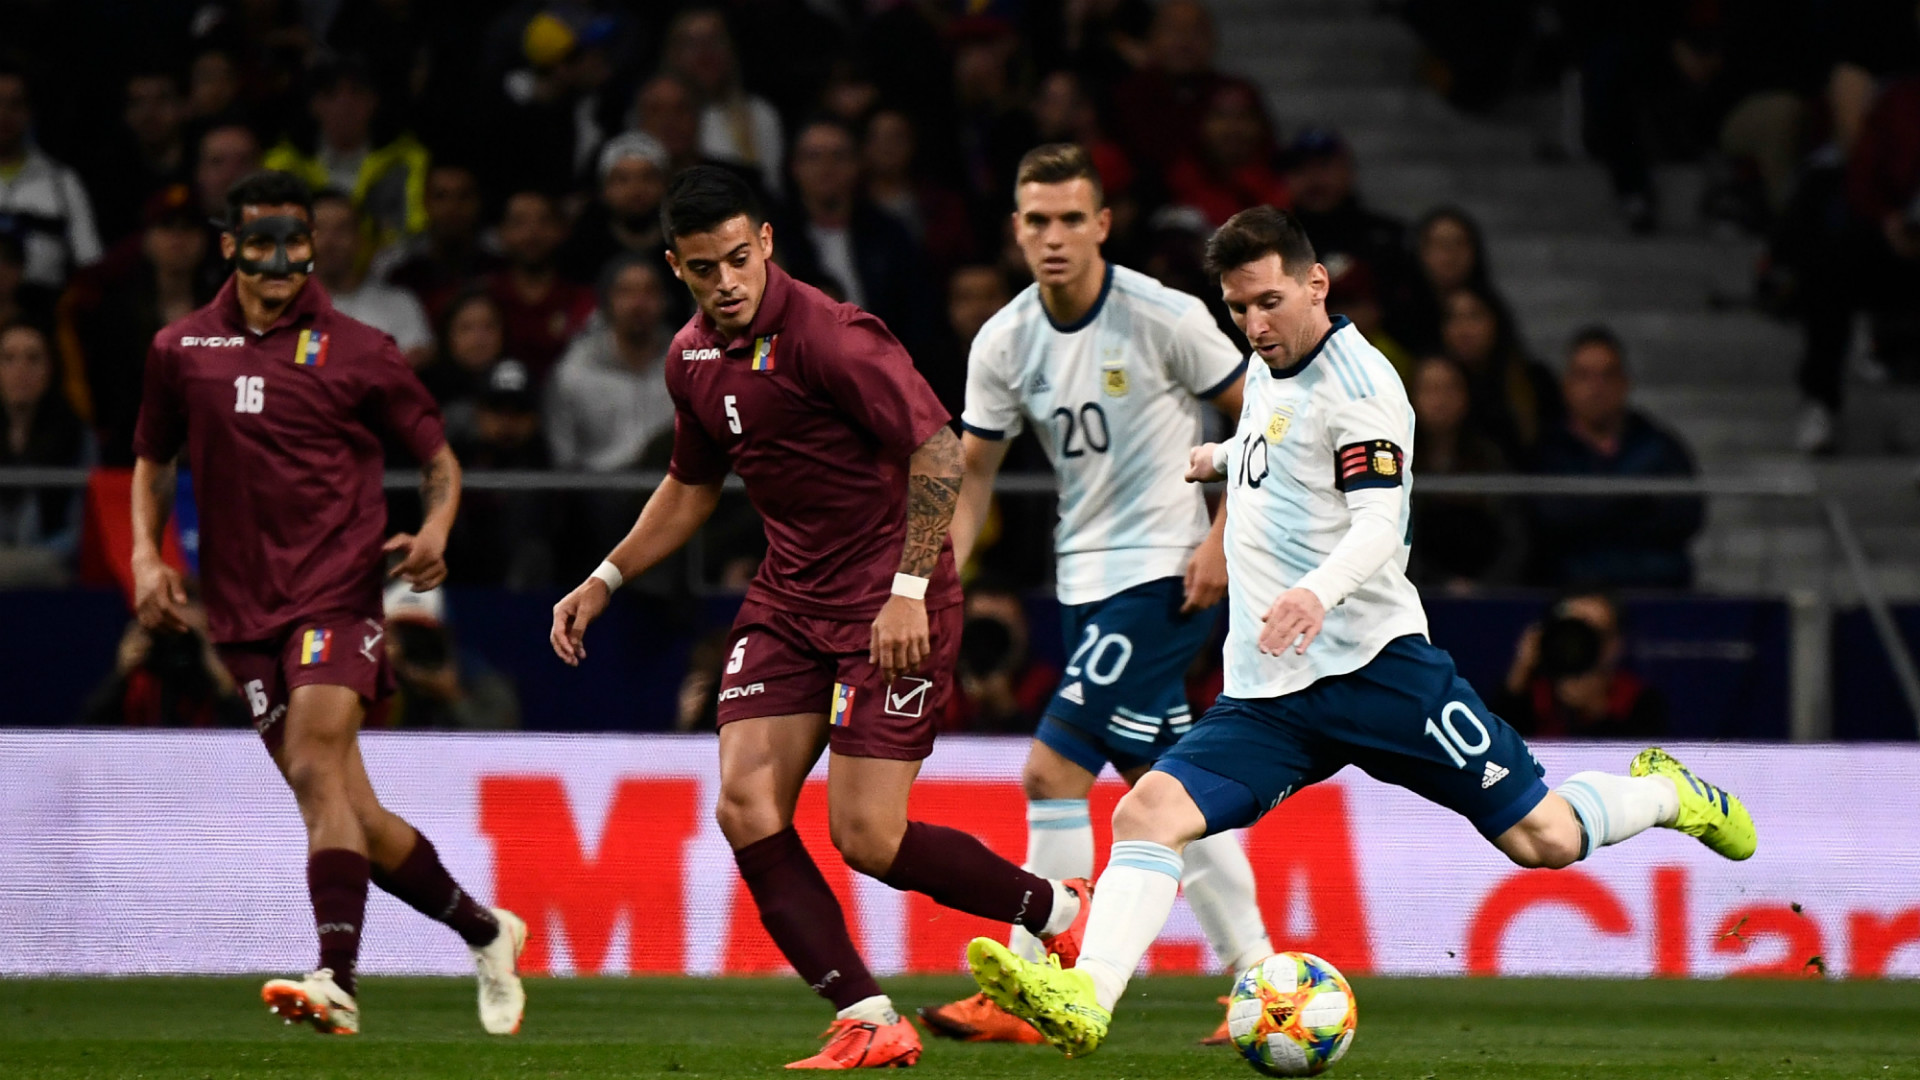 Venezuela vs Argentina Betting Tips: Latest odds, team news, preview and predictions